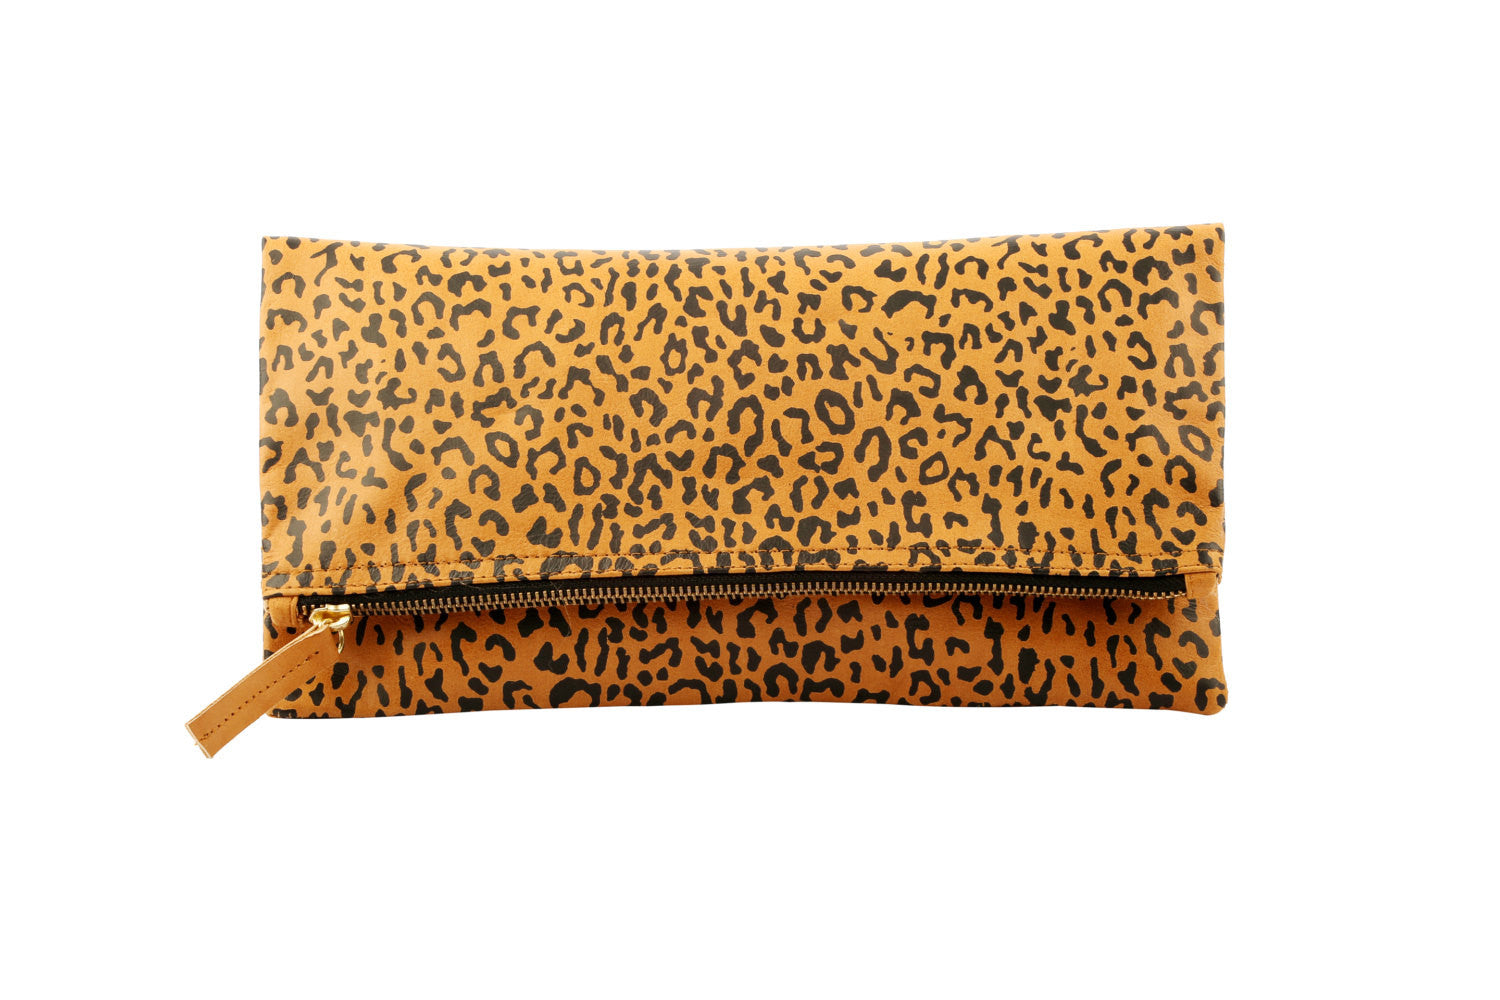 Cheetah Clutch; Cheetah Handbag; Cheetah Purse; Cheetah